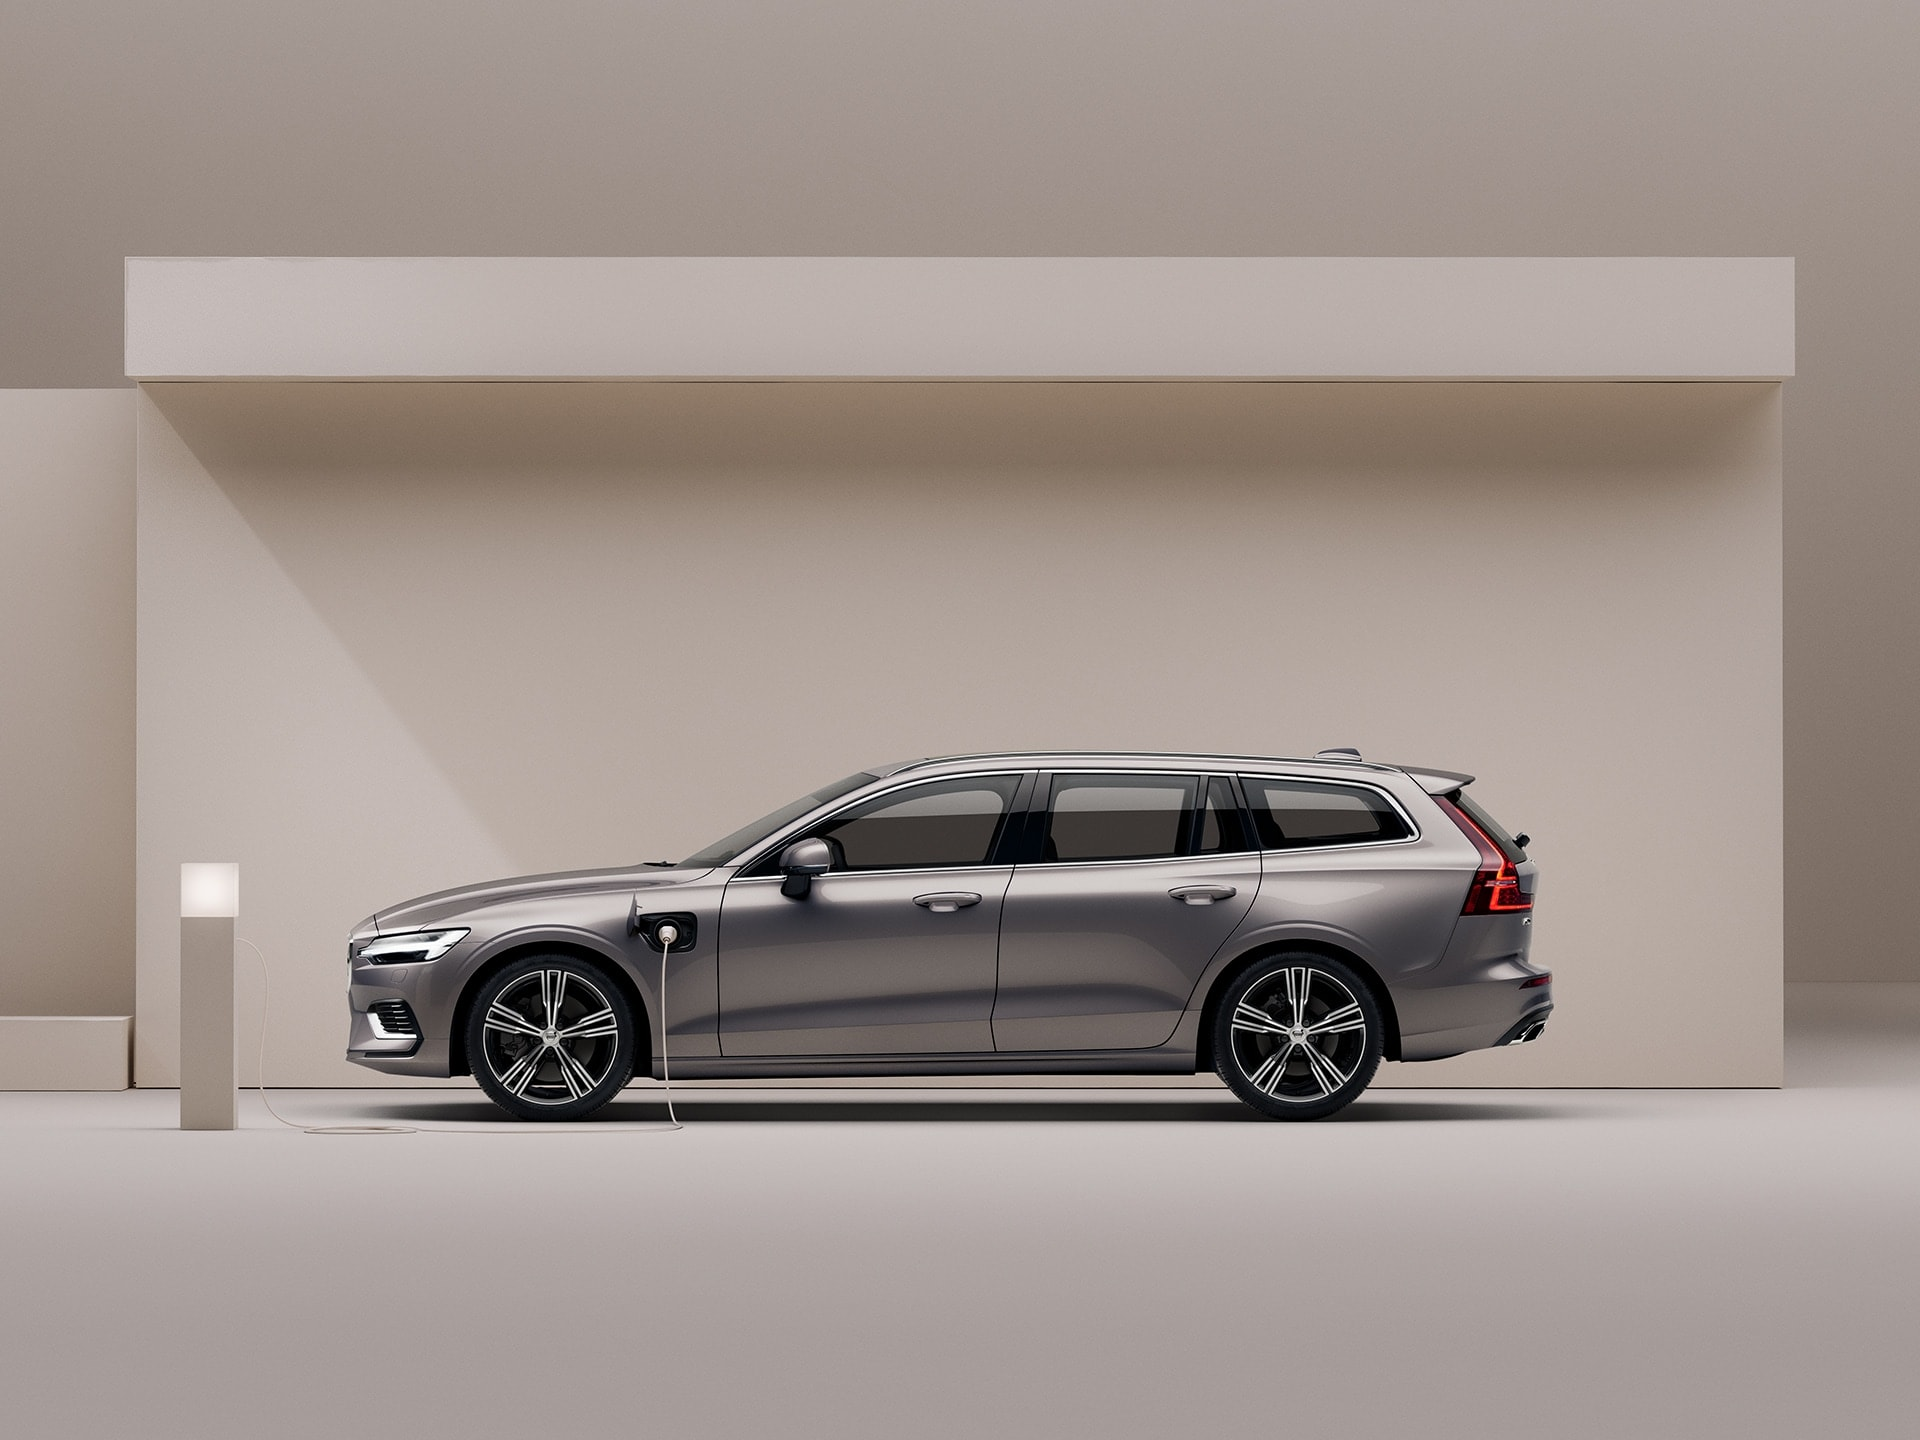 A beige Volvo V60 Recharge, charging in a beige surrounding